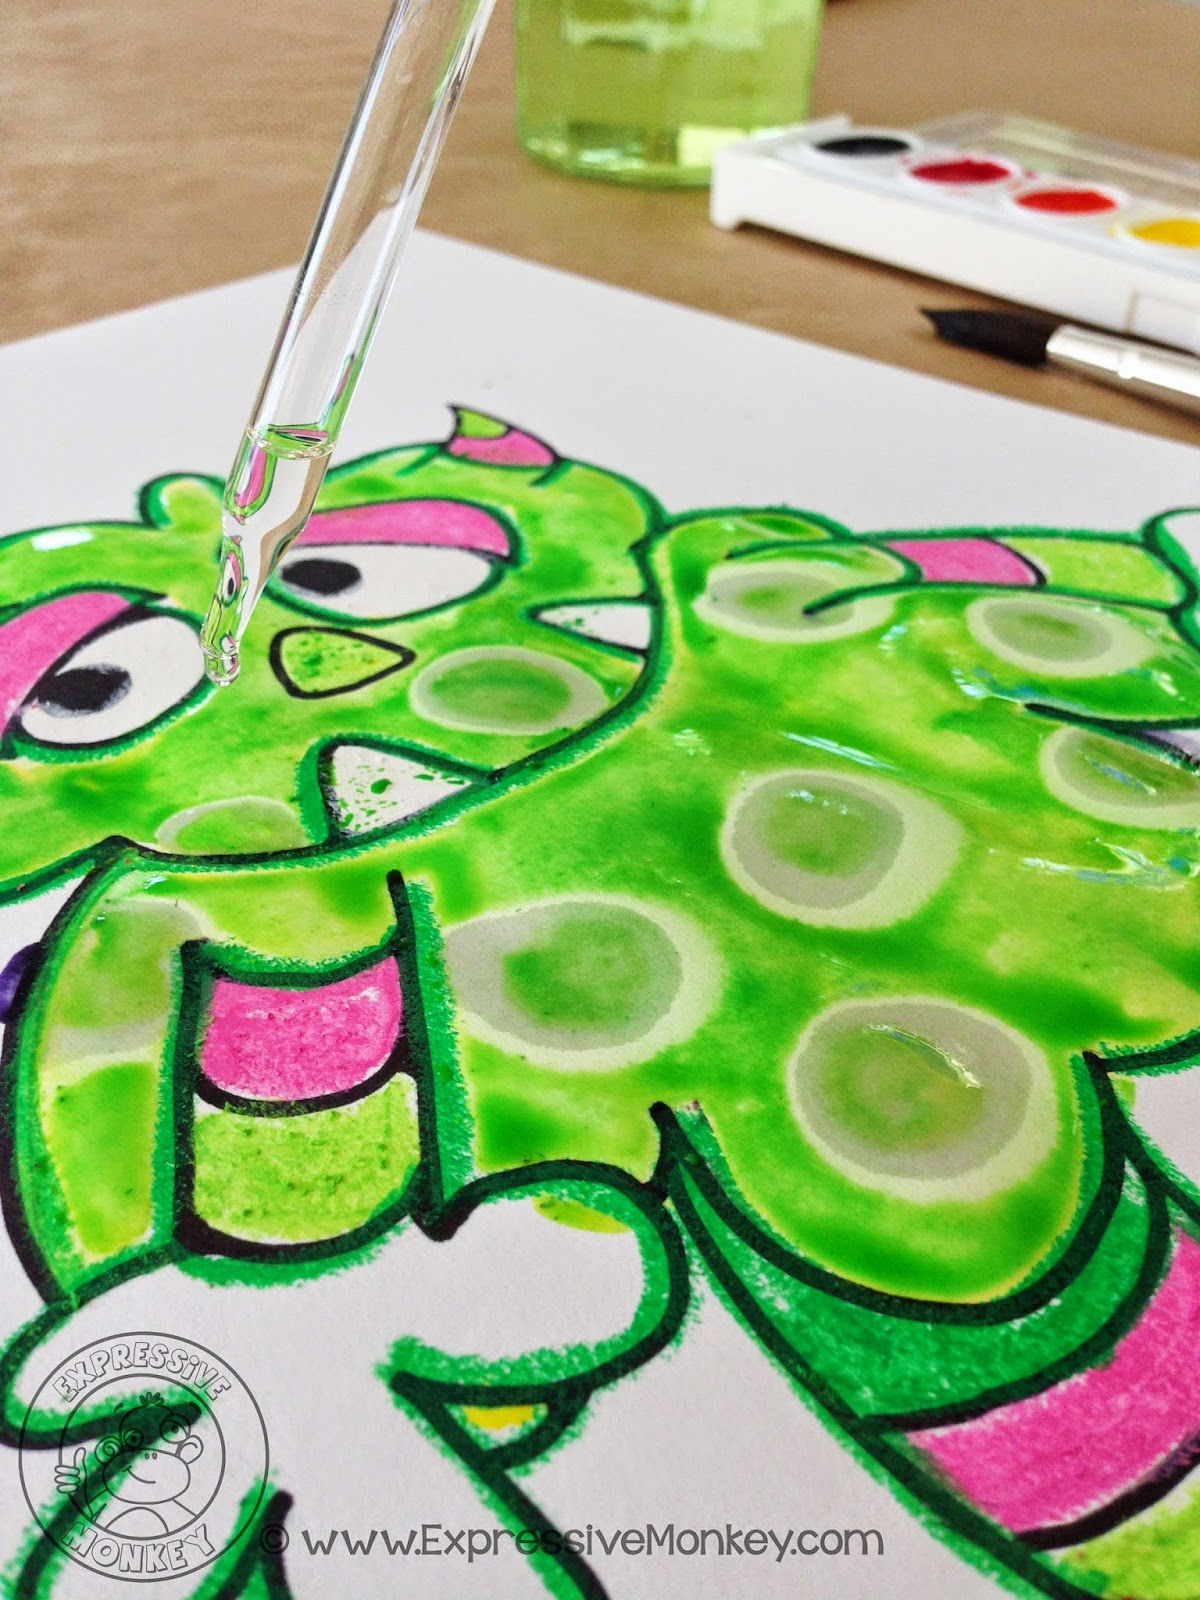 Expressive Monkey demonstrates how to use watercolors and rubbing alcohol to create interesting spots on a monster drawing.